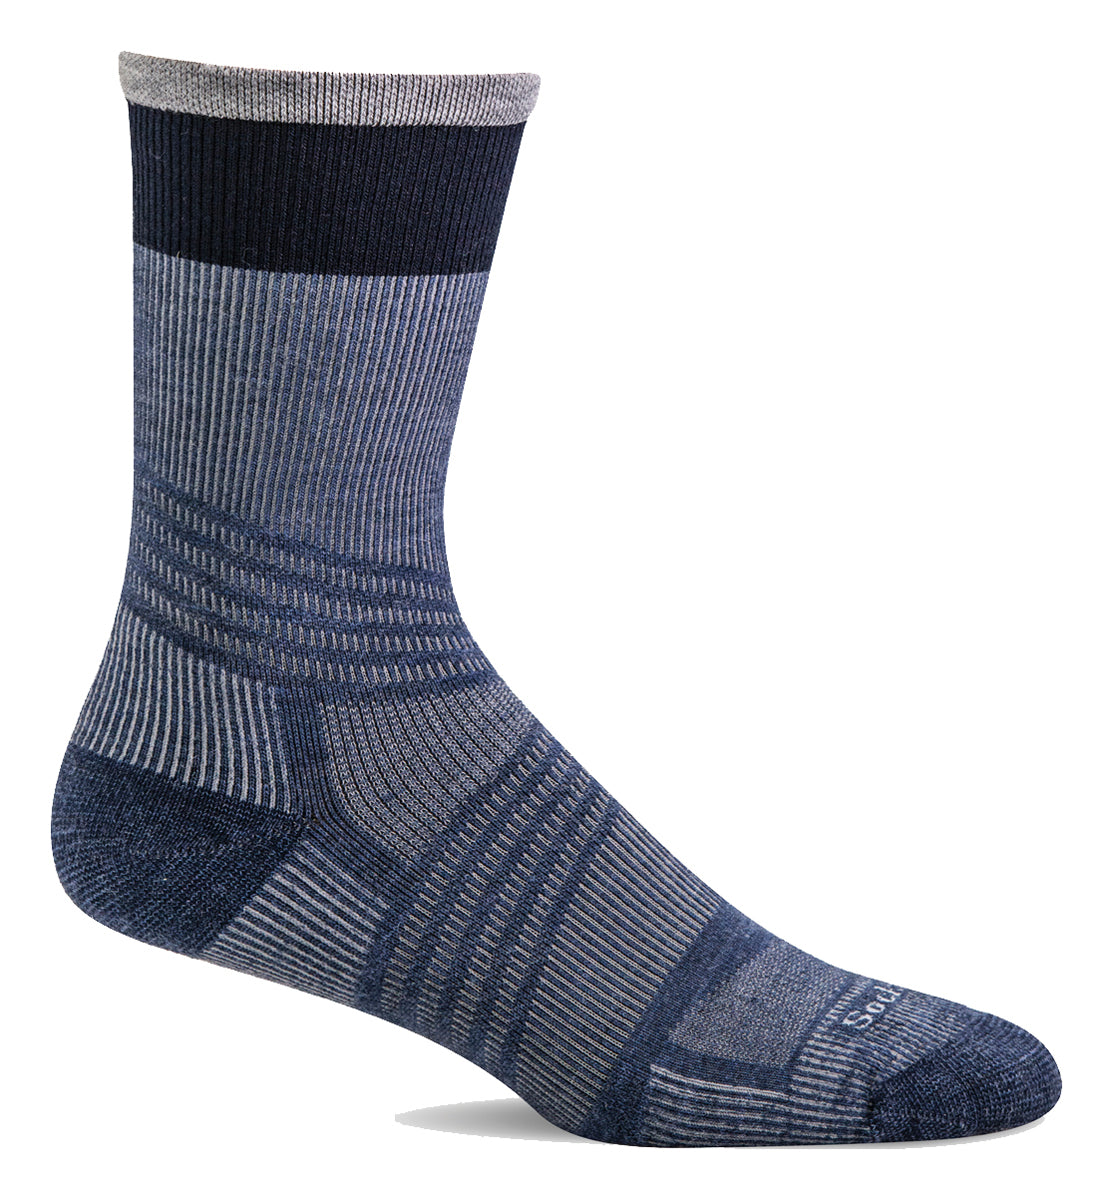 Men's Sockwell Summit Crew II Firm Graduated Compression Sock in Denim from the front view